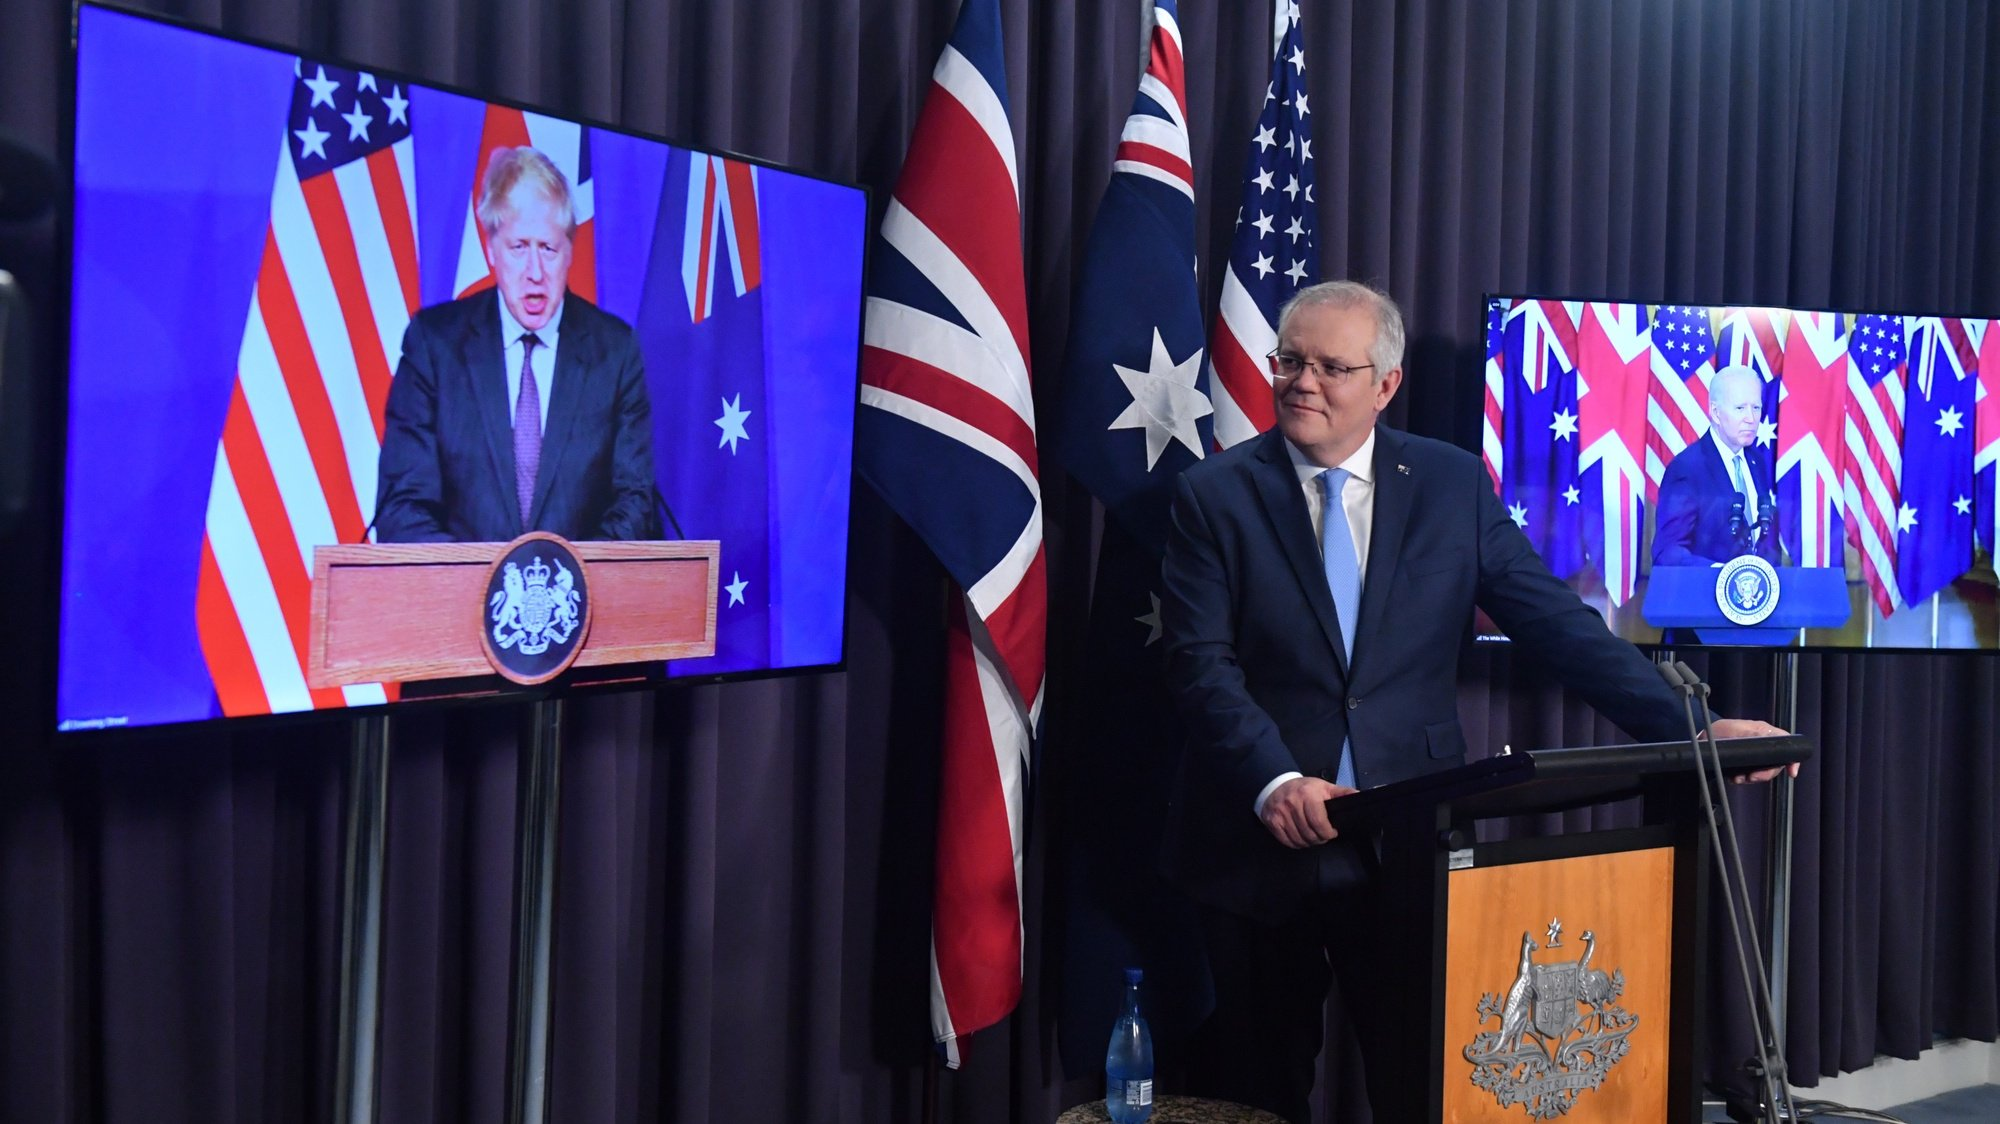 epa09470855 Britain's Prime Minister Boris Johnson, Australia's Prime Minister Scott Morrison (C) and US President Joe Biden attend a joint press conference via audio visual link (AVL) from The Blue Room at Parliament House in Canberra, Australian Capital Territory, Australia, 16 September 2021. Australia, the United Kingdom and the United States agreed to the creation of a trilateral security partnership to be known as AUKUS.  EPA/MICK TSIKAS AUSTRALIA AND NEW ZEALAND OUT